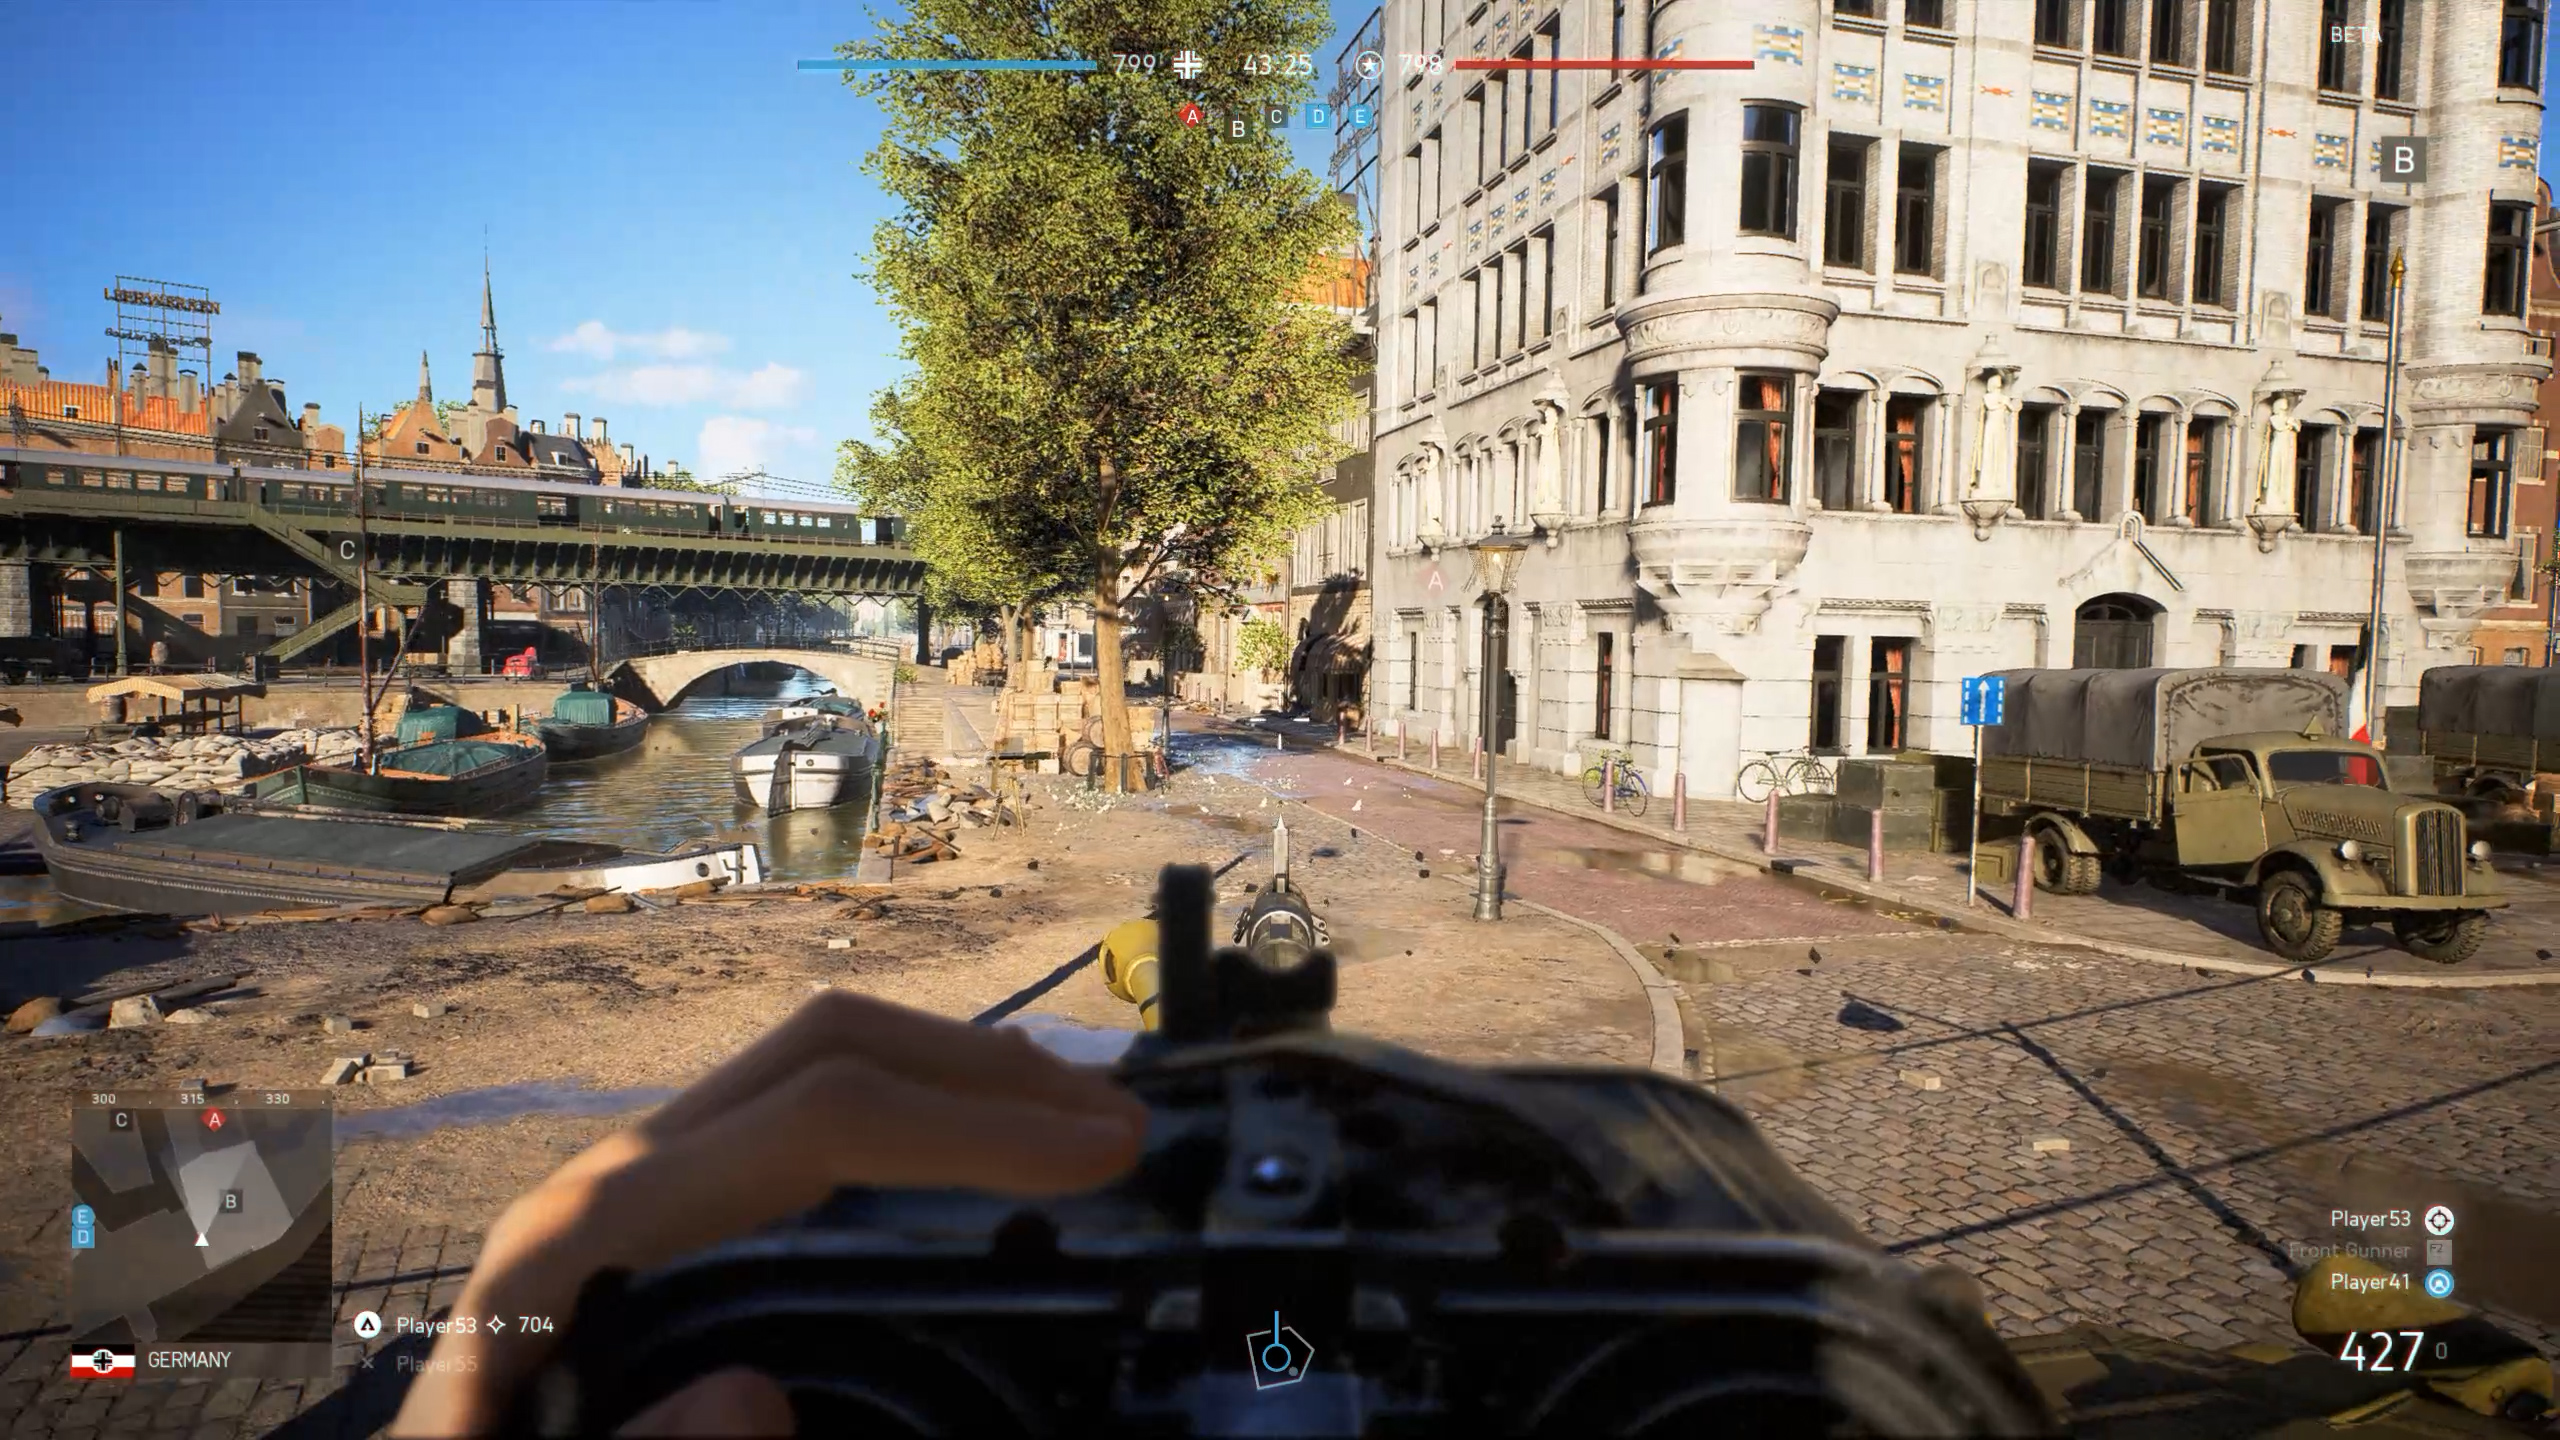 Gamescom 2018: Rotterdam is Beautiful in Battlefield V - Rocket Chainsaw